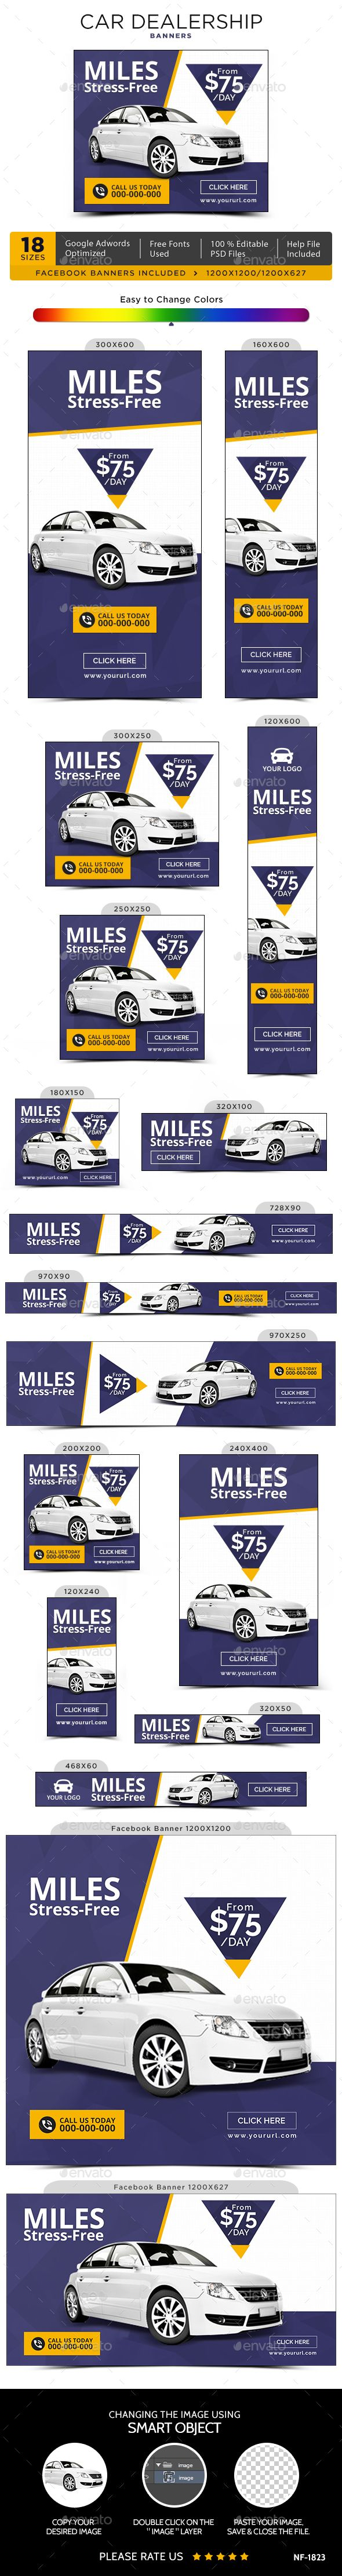 Car Dealership Banners - #Banners & Ads #Web Elements Download here: https://graphicriver.net/item/car-dealership-banners/20101229?ref=alena994